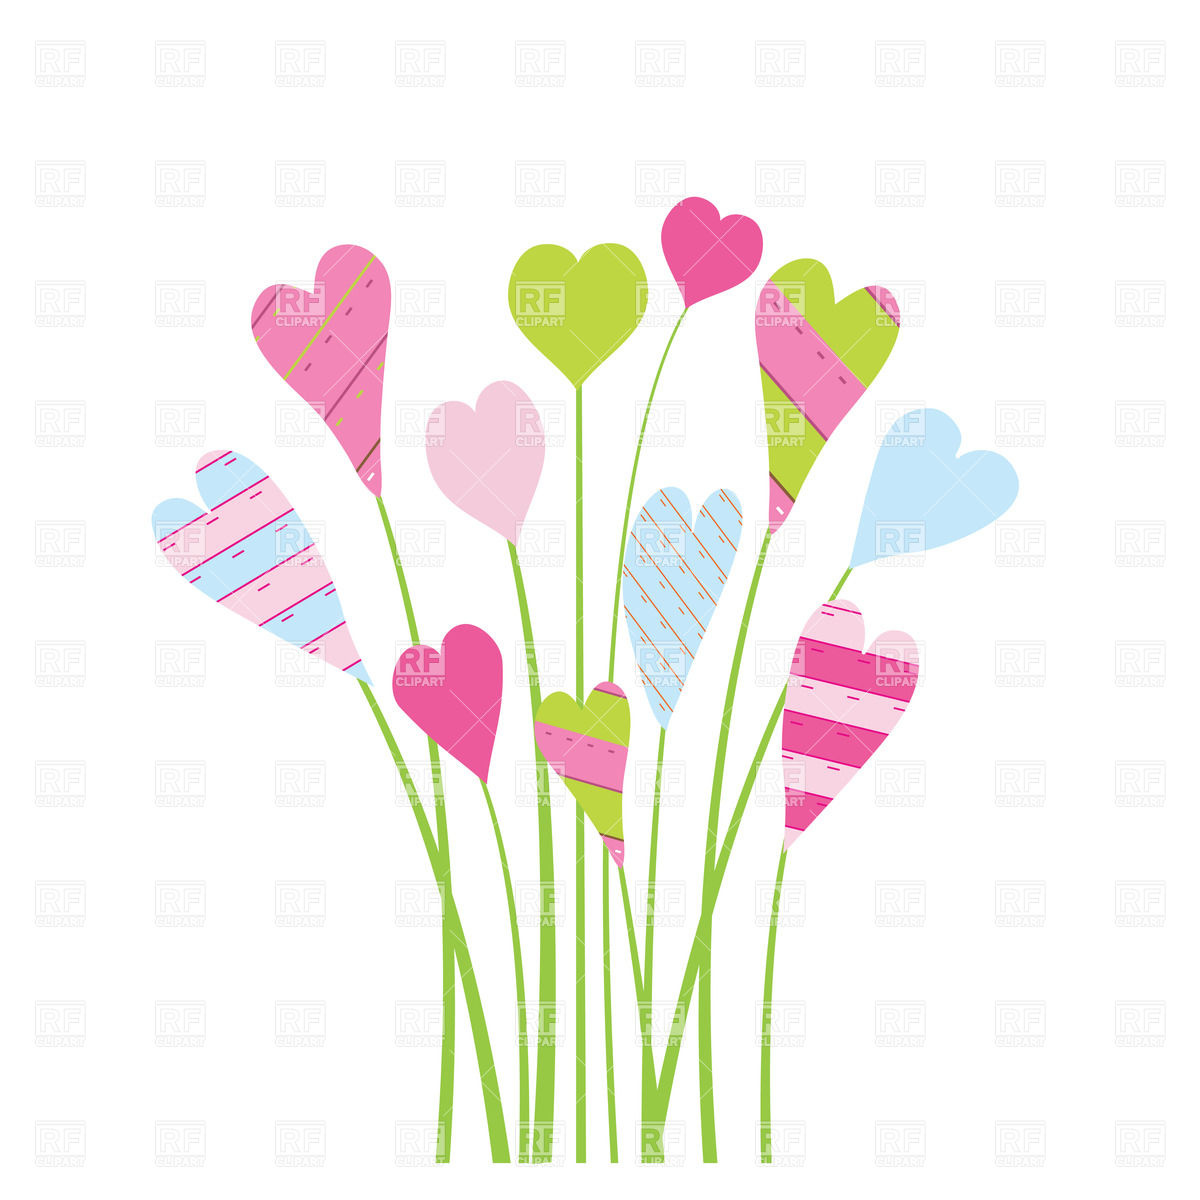 Floral clipart flower heart Floral border Collection heart Heart